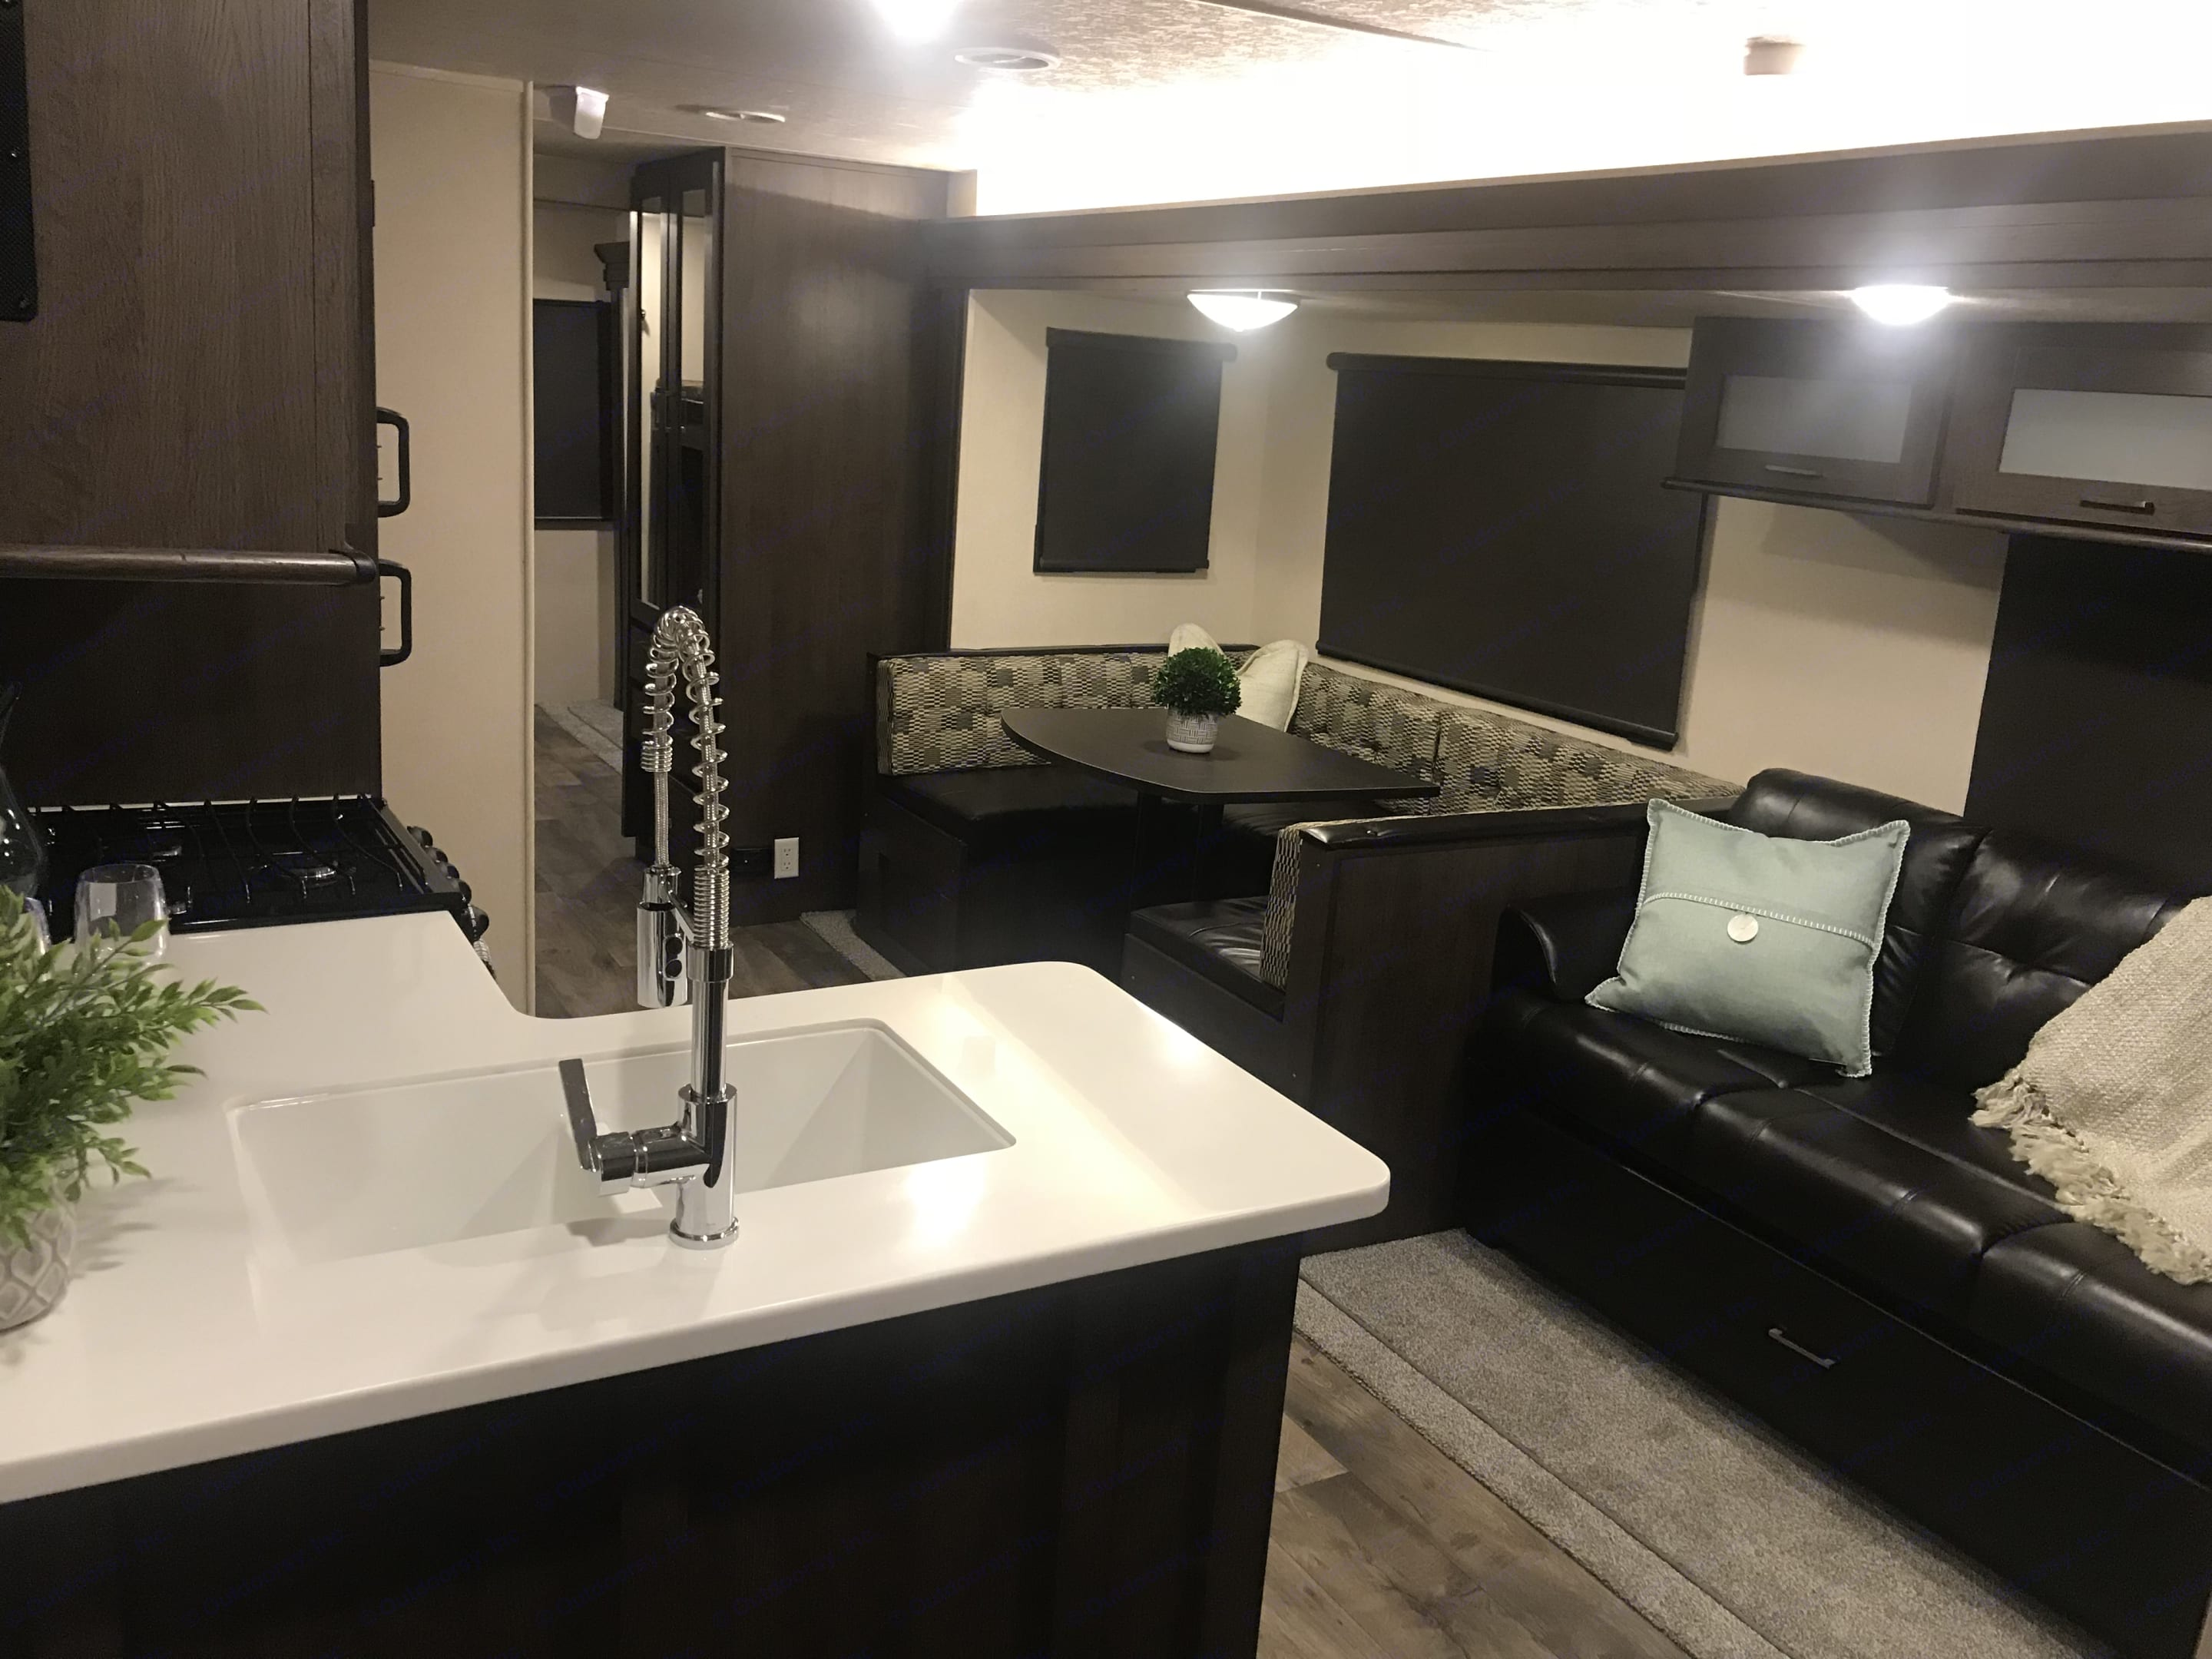 When you step into the RV, you see the couch and dining area. . Forest River Wildwood 32BHDS 2018